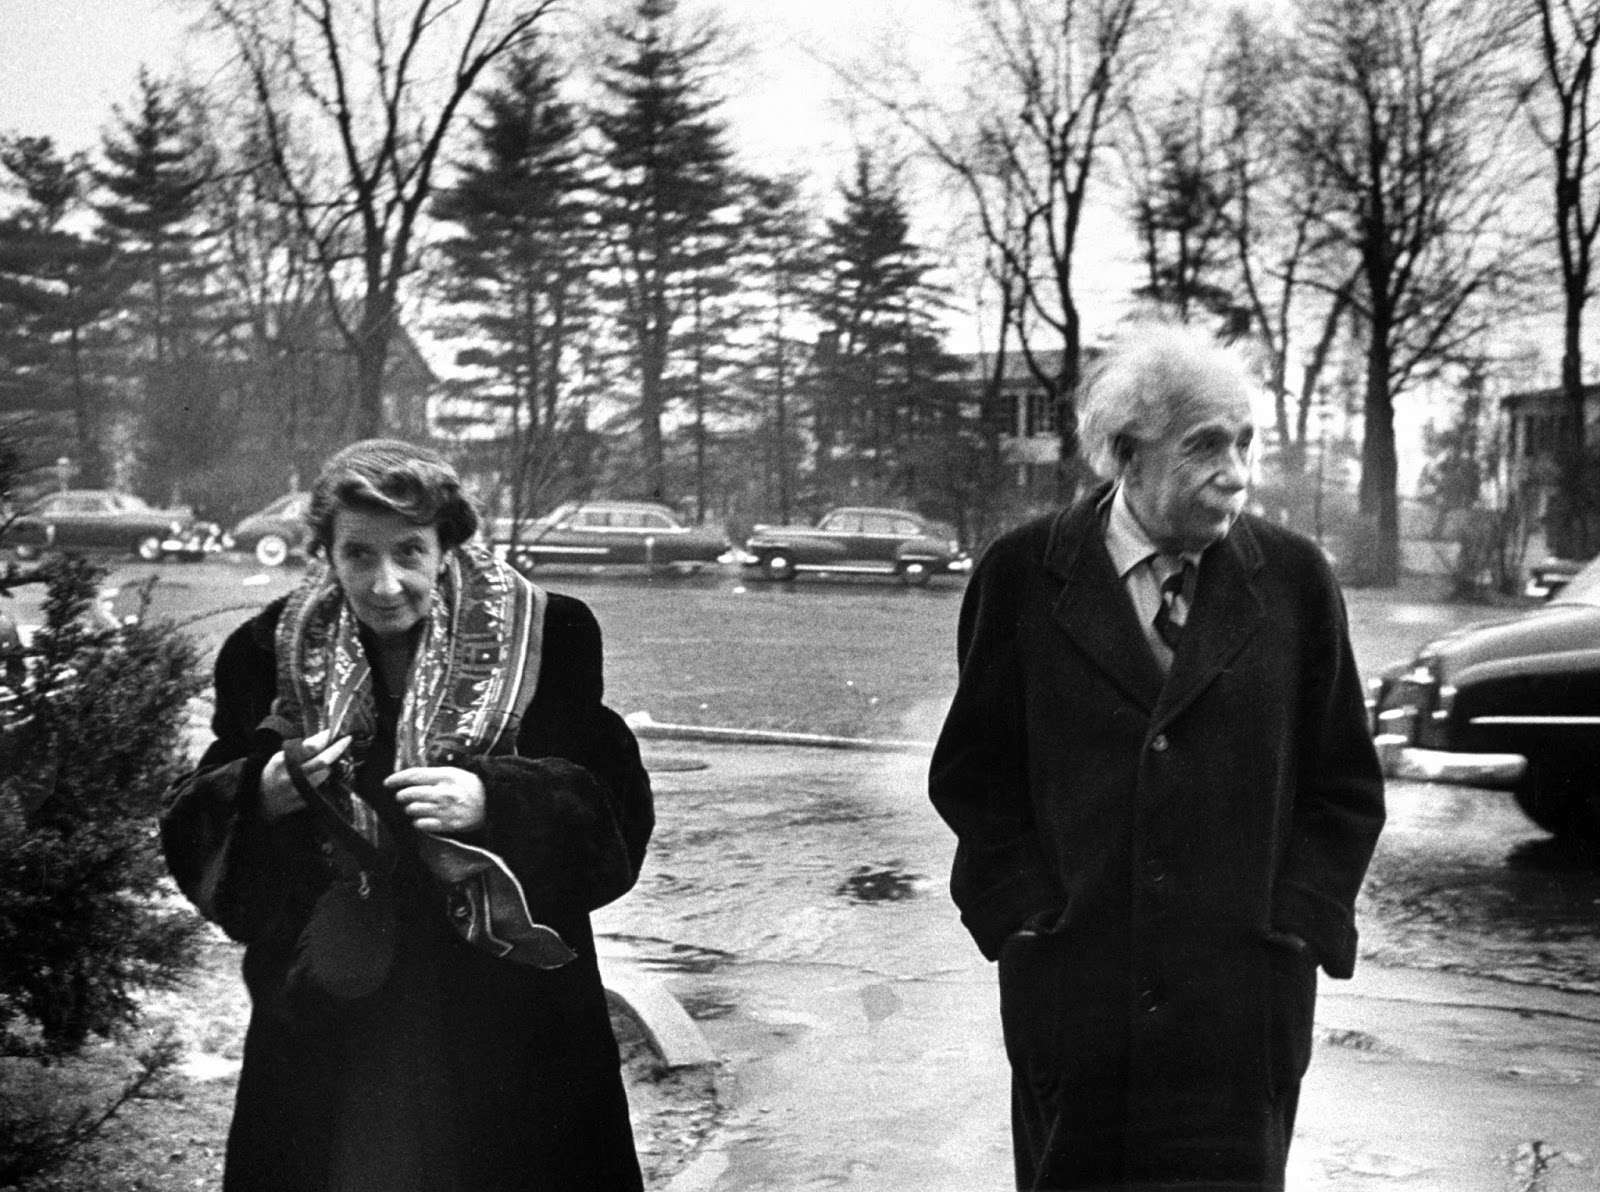 a look at the life of albert einstein He saw a beam of light and imagined riding it he looked up at the sky and  envisioned that space-time was curved albert einstein reinterpreted the inner.